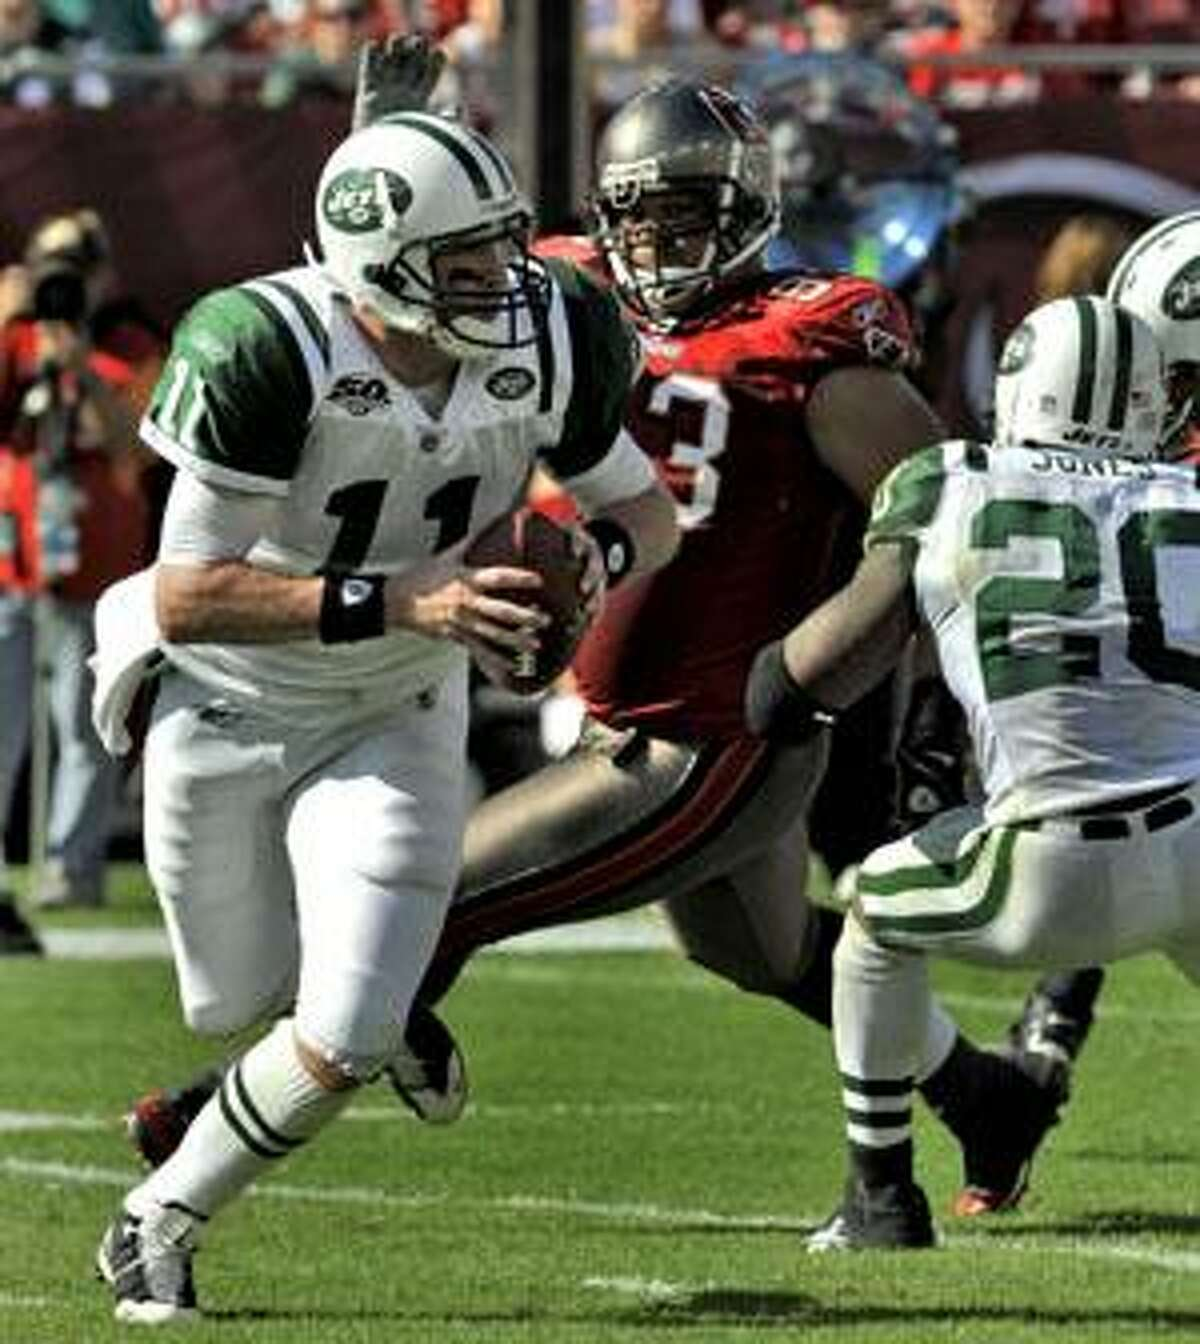 New York Jets quarterback Kellen Clemens (11) scrambles as Jets' Thomas Jones, right, puts a block on Tampa Bay Buccaneers defensive tackle Roy Miller (93) during the first quarter Sunday in Tampa, Fla.